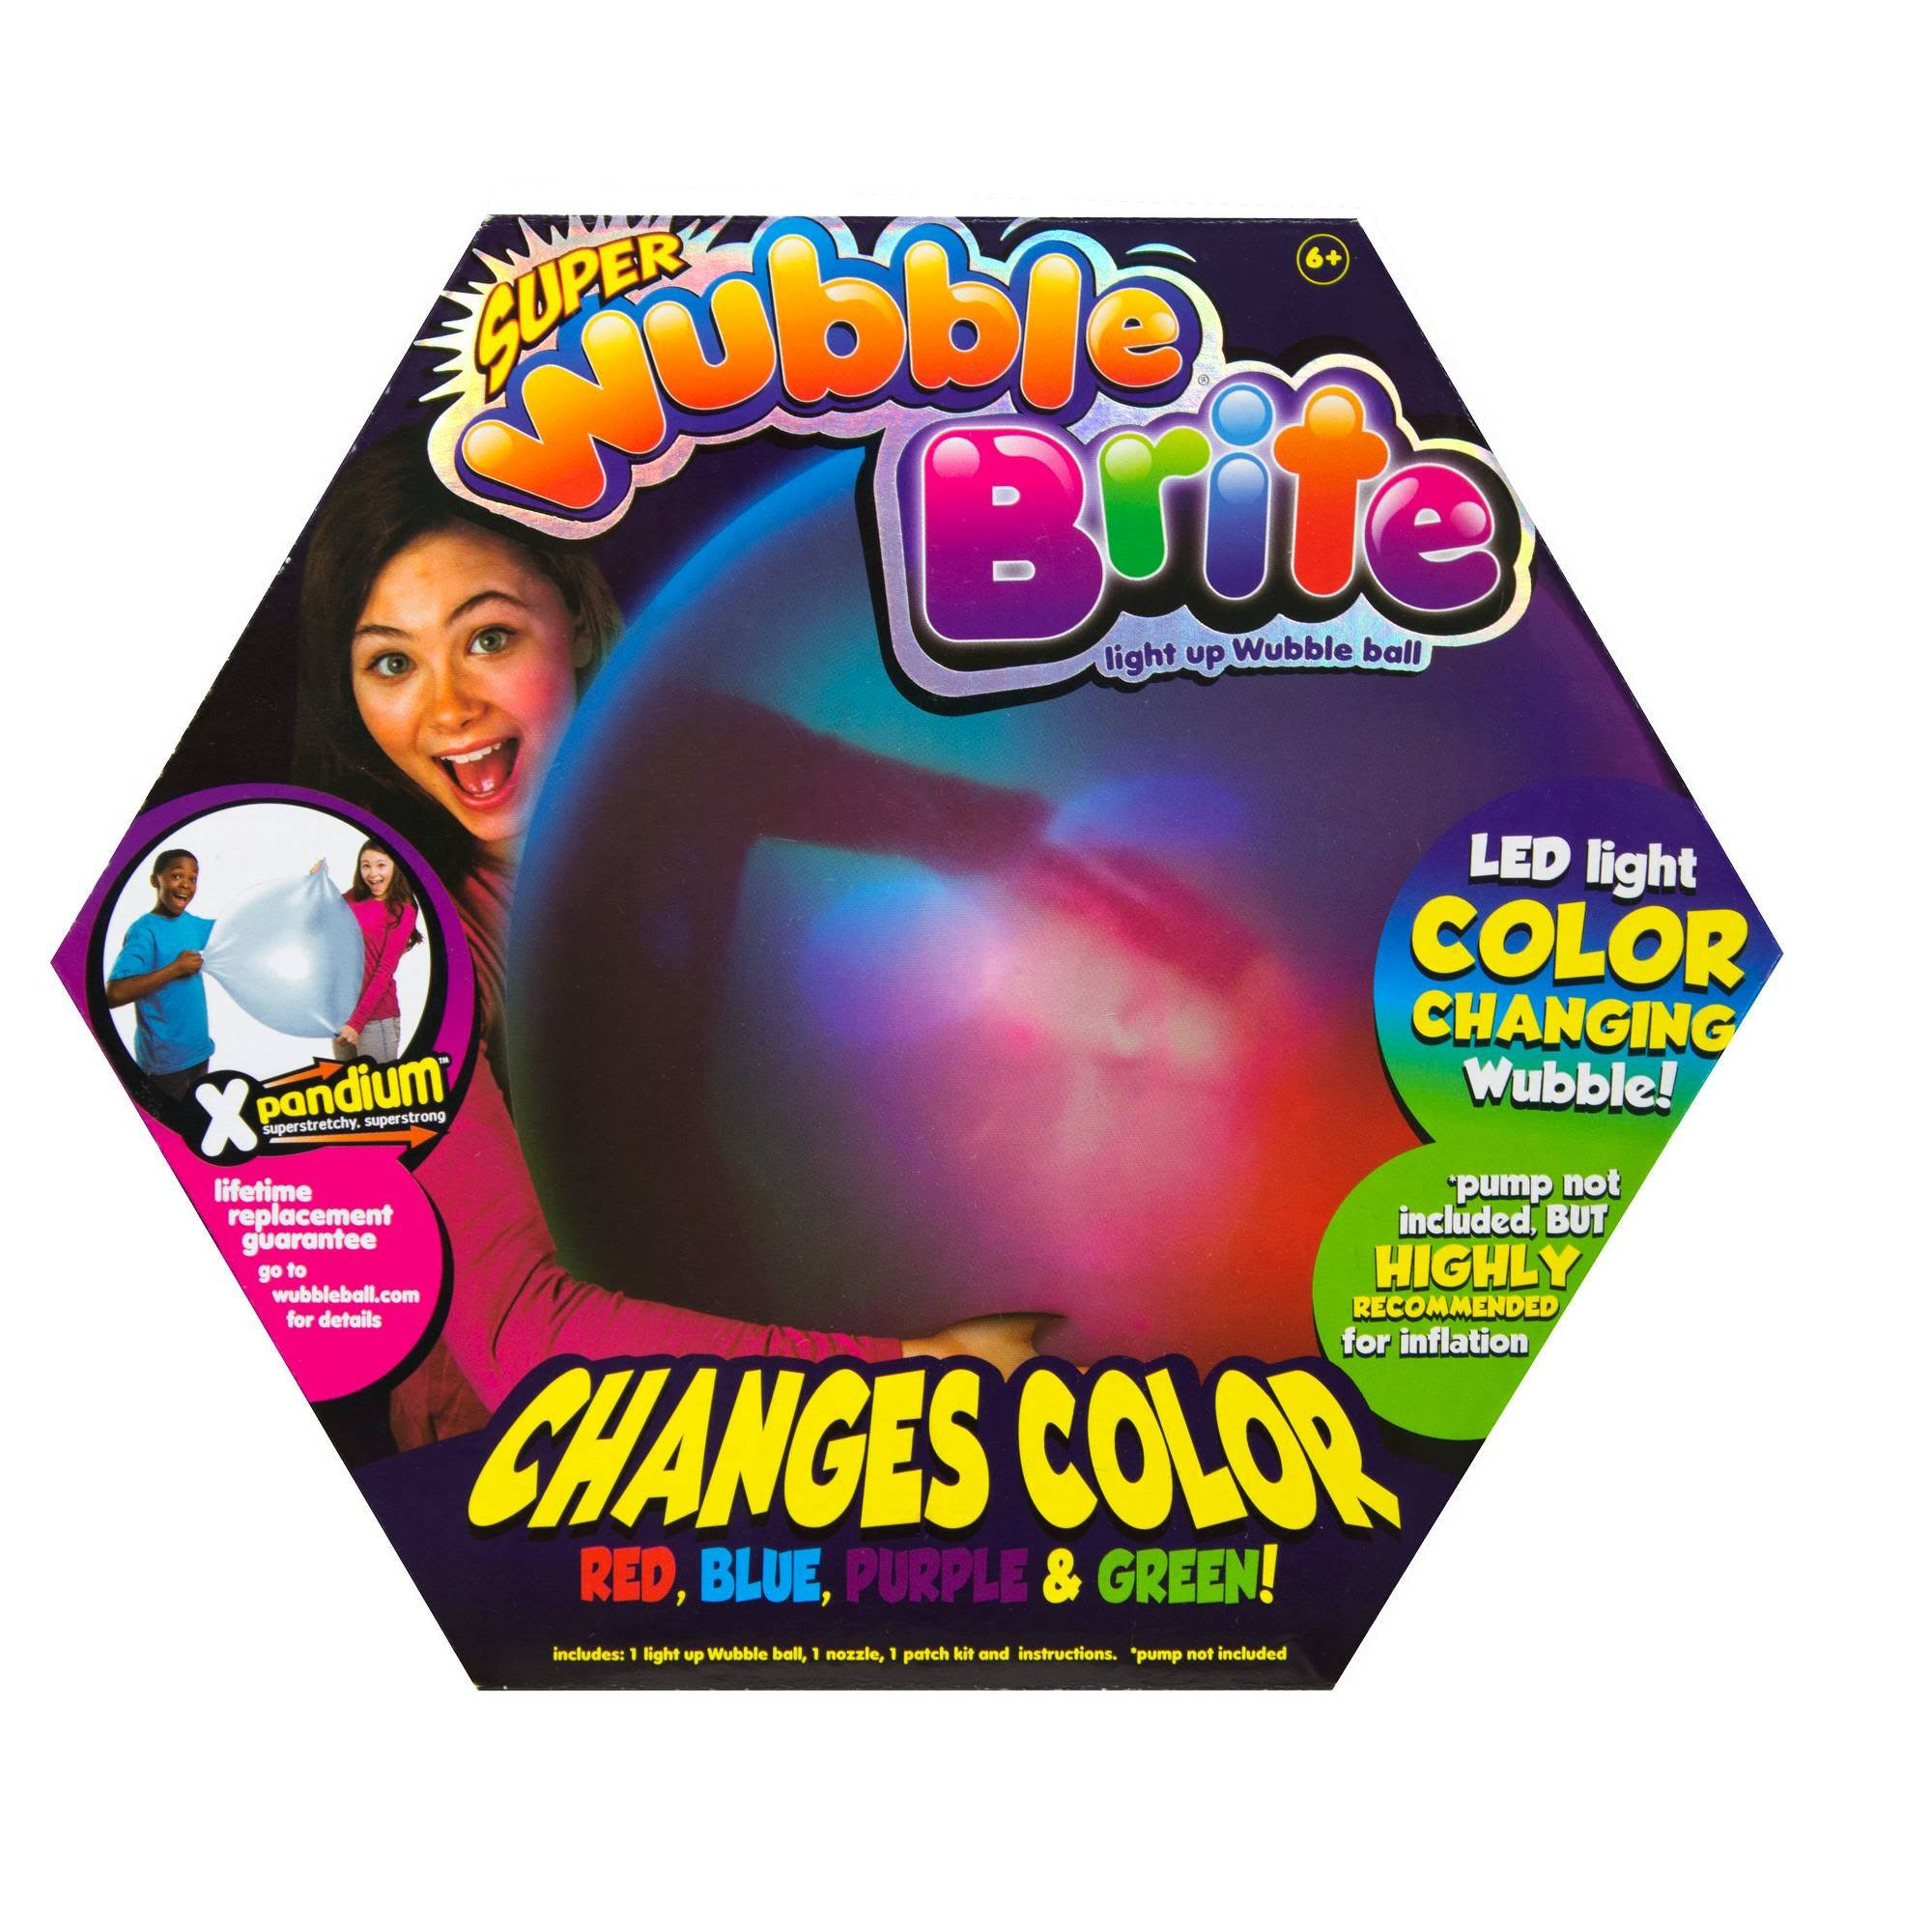 Super Wubble Brite Light Up Color Changing Wubble Ball